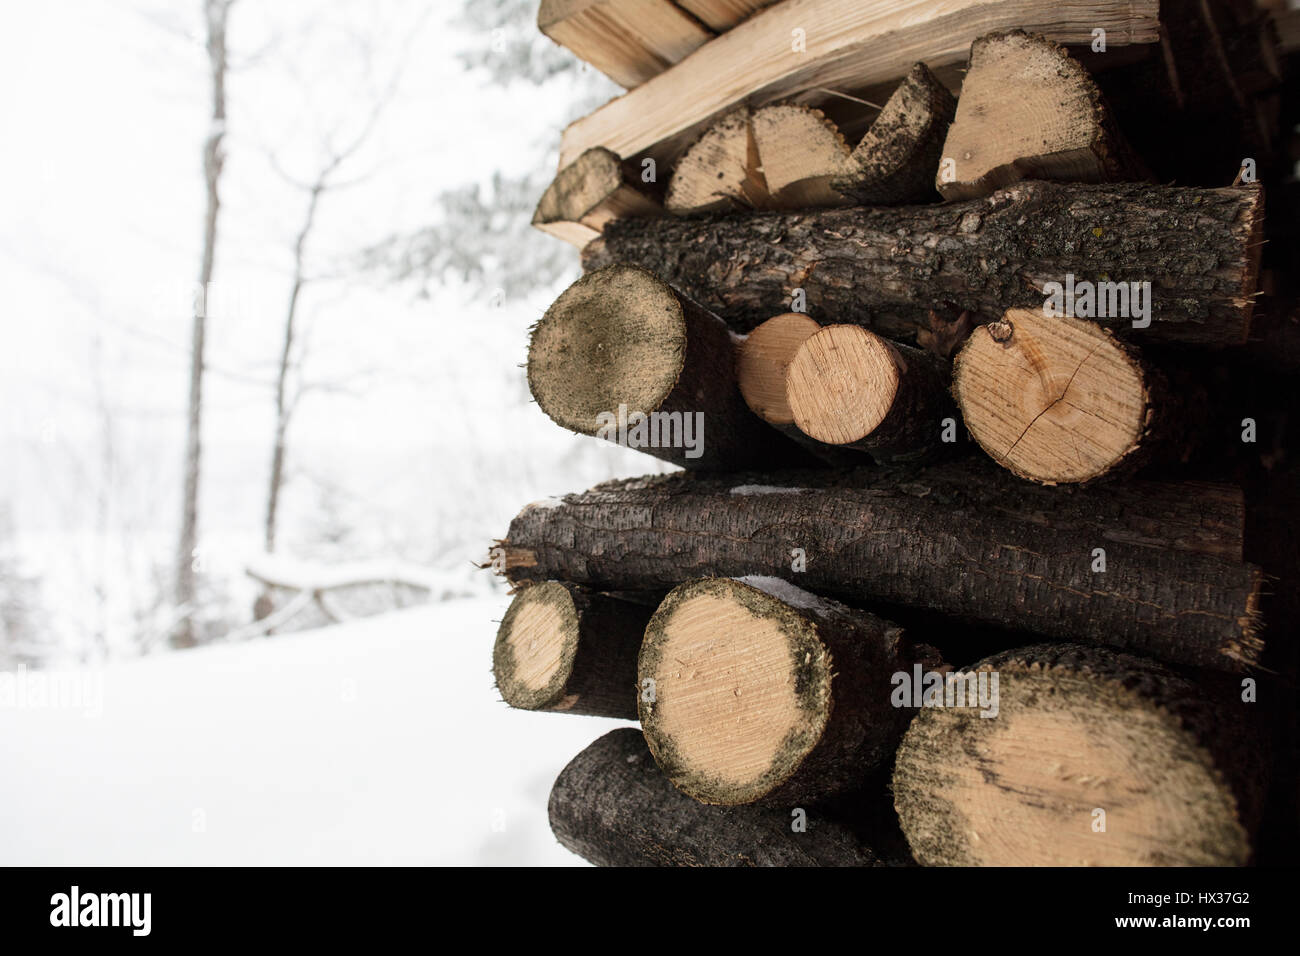 Firewood stacked under a deck during winter in Northern Ontario, Canada. - Stock Image